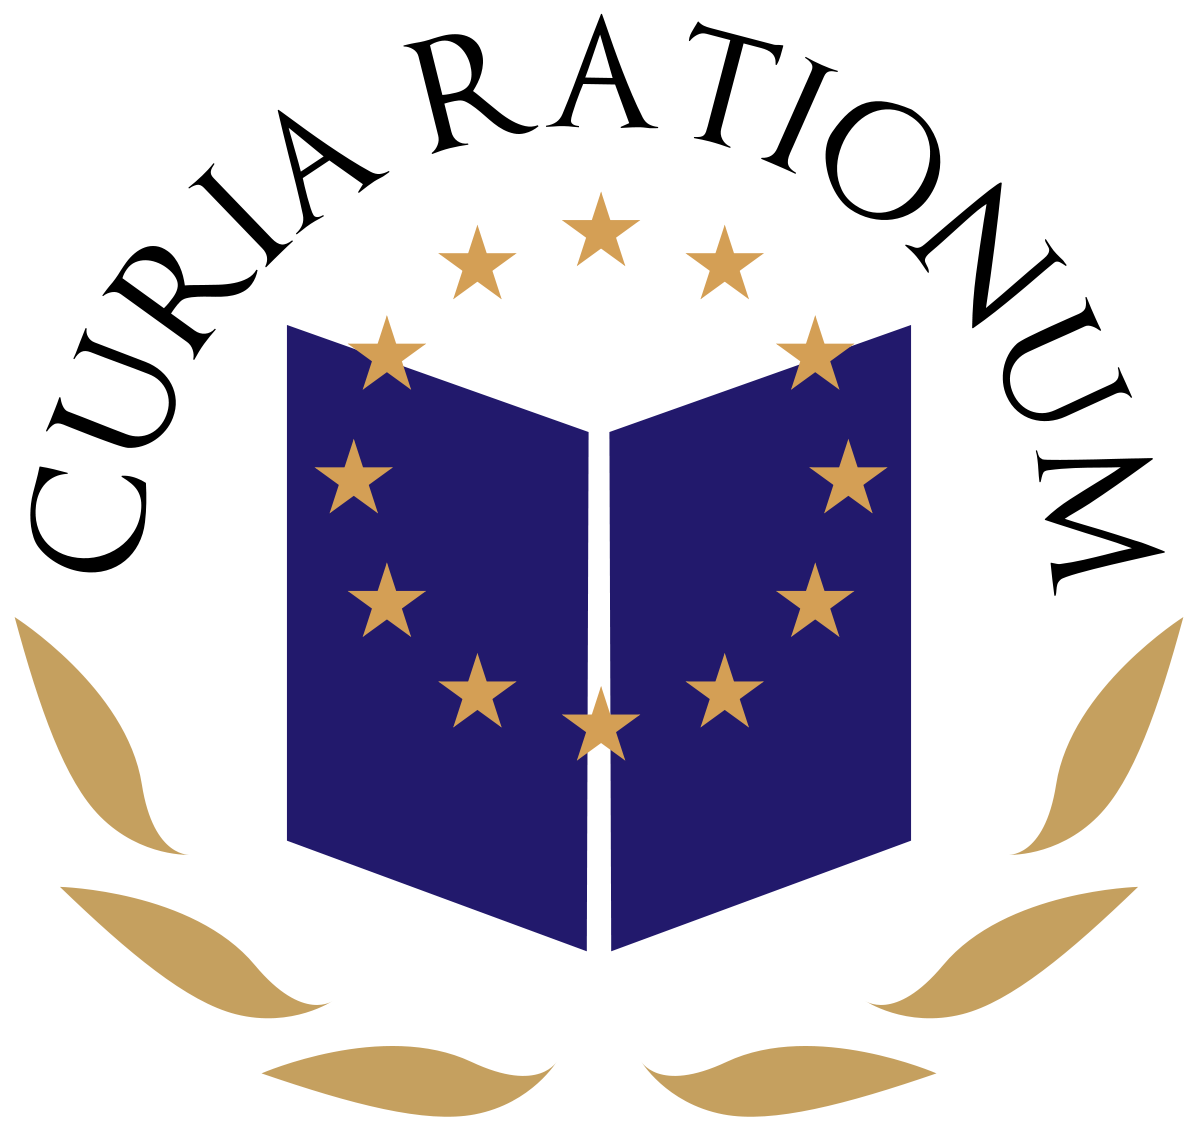 european court of auditors wikipedia responsibility clipart auditor